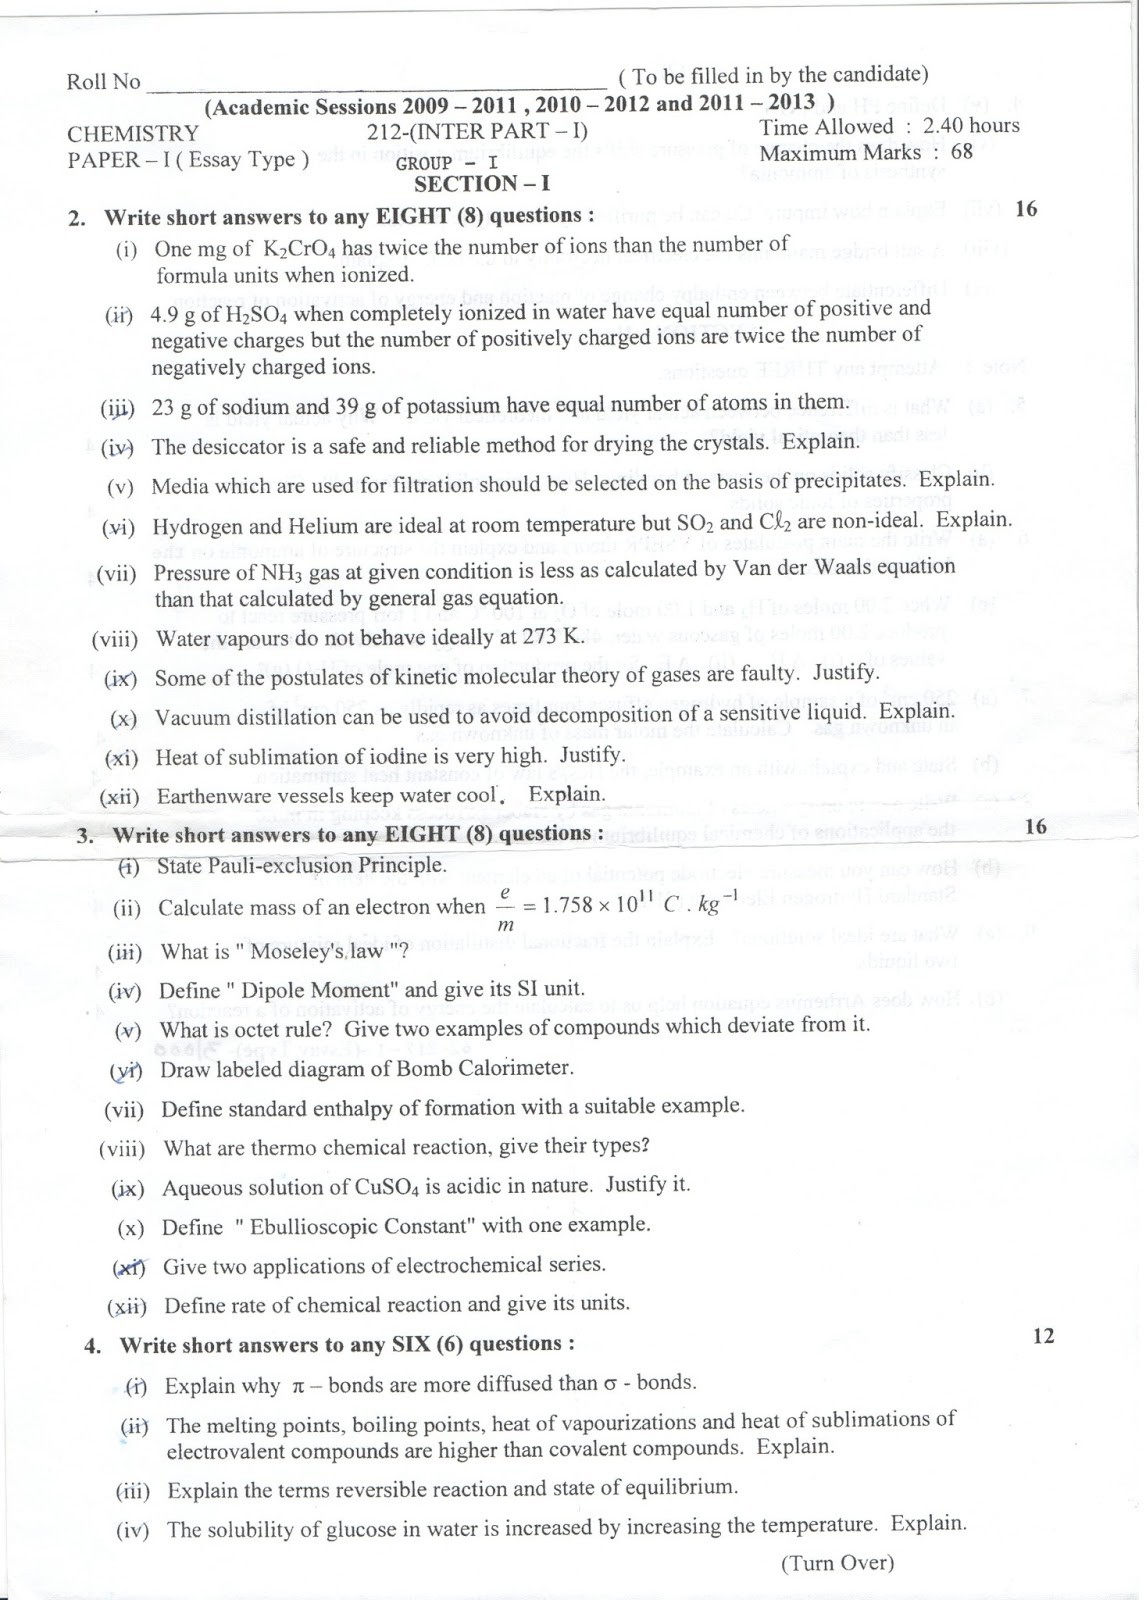 Up board model paper 2012 intermediate chemistry